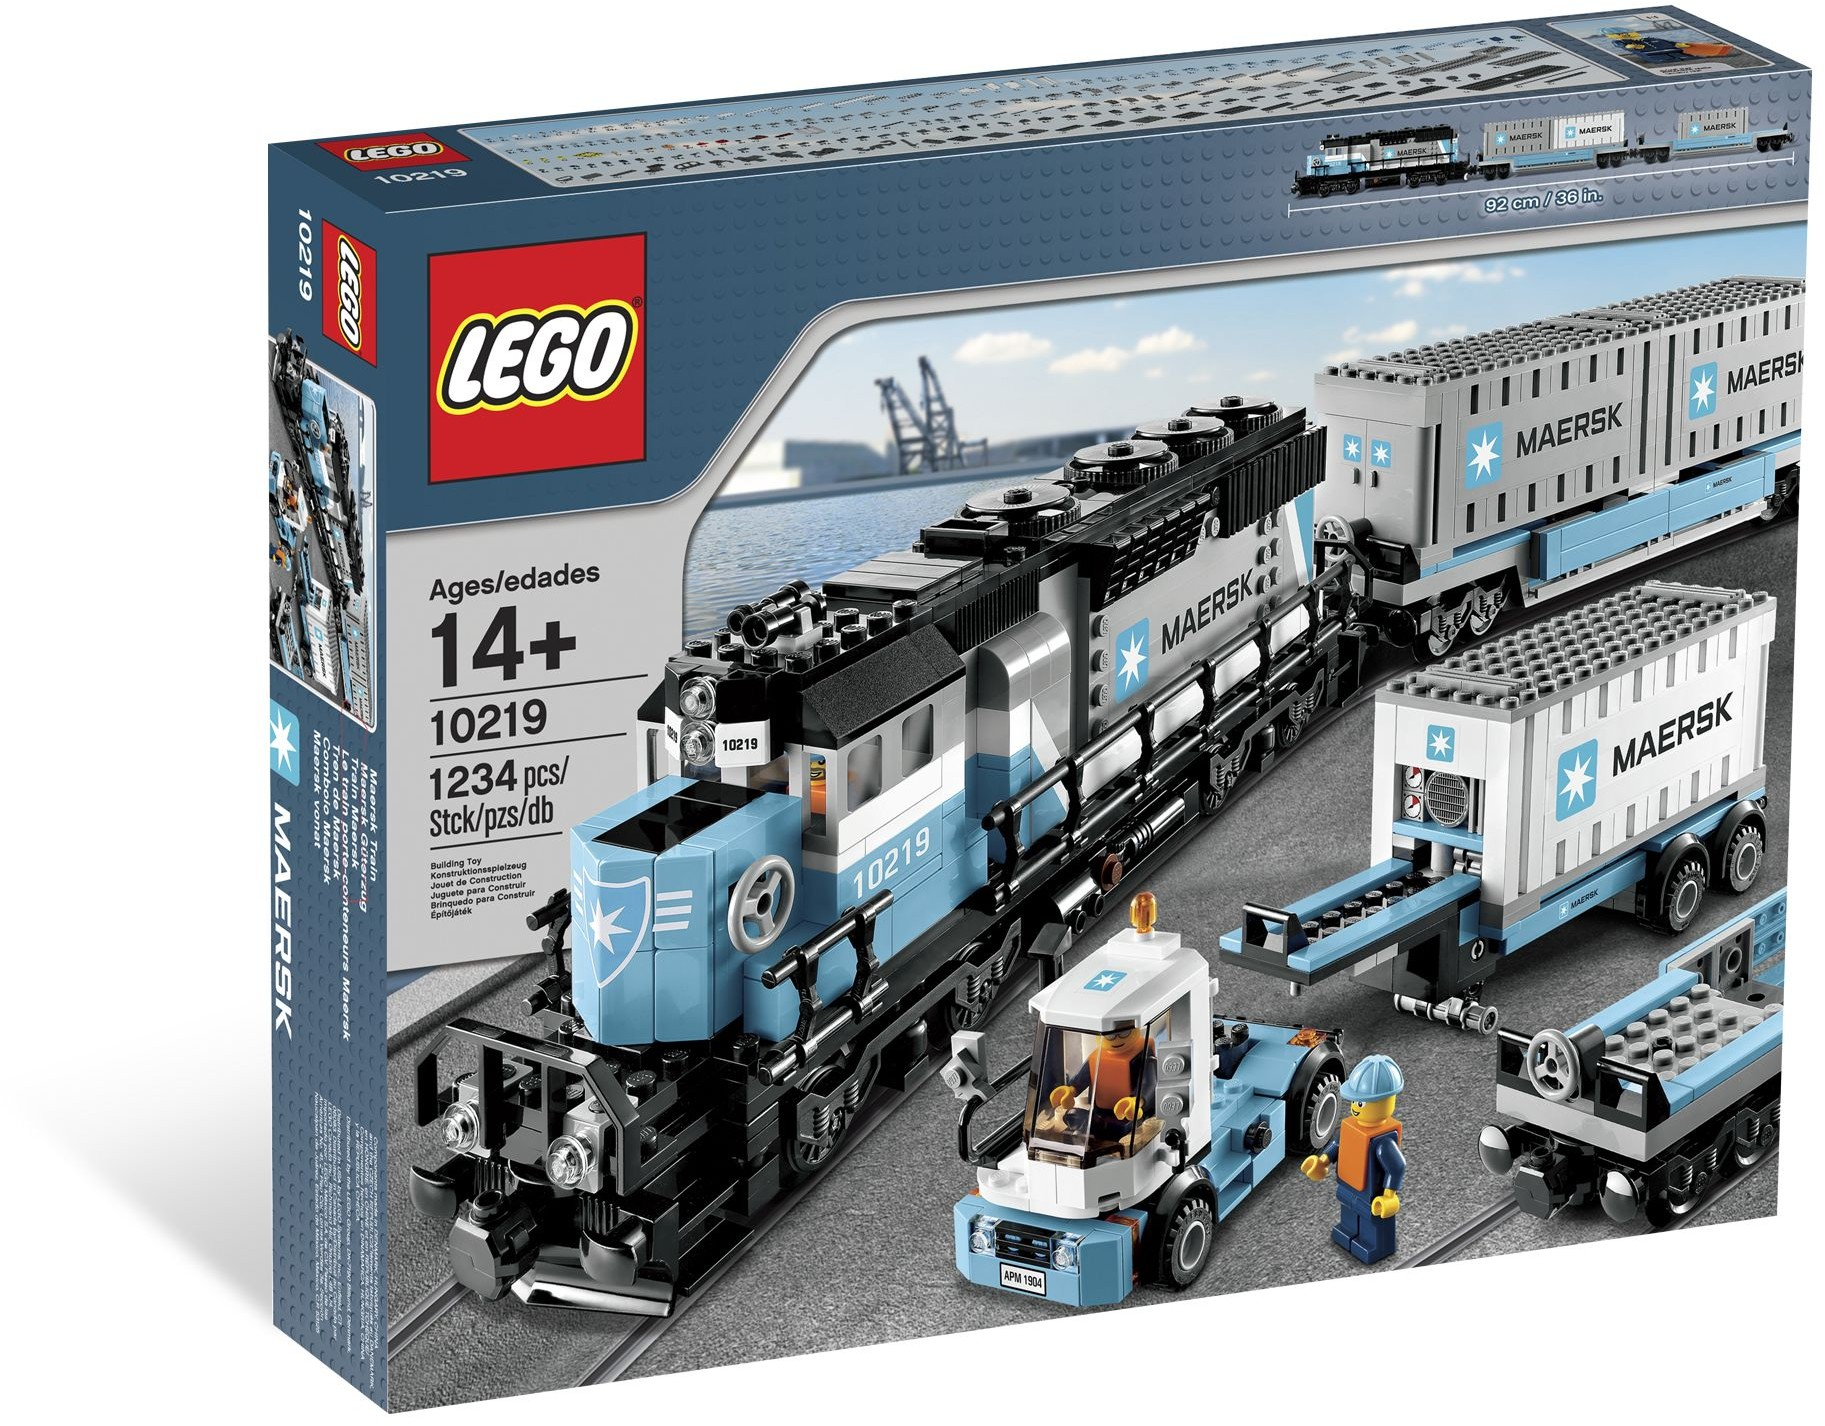 Set Nou: 10219 Maersk Train